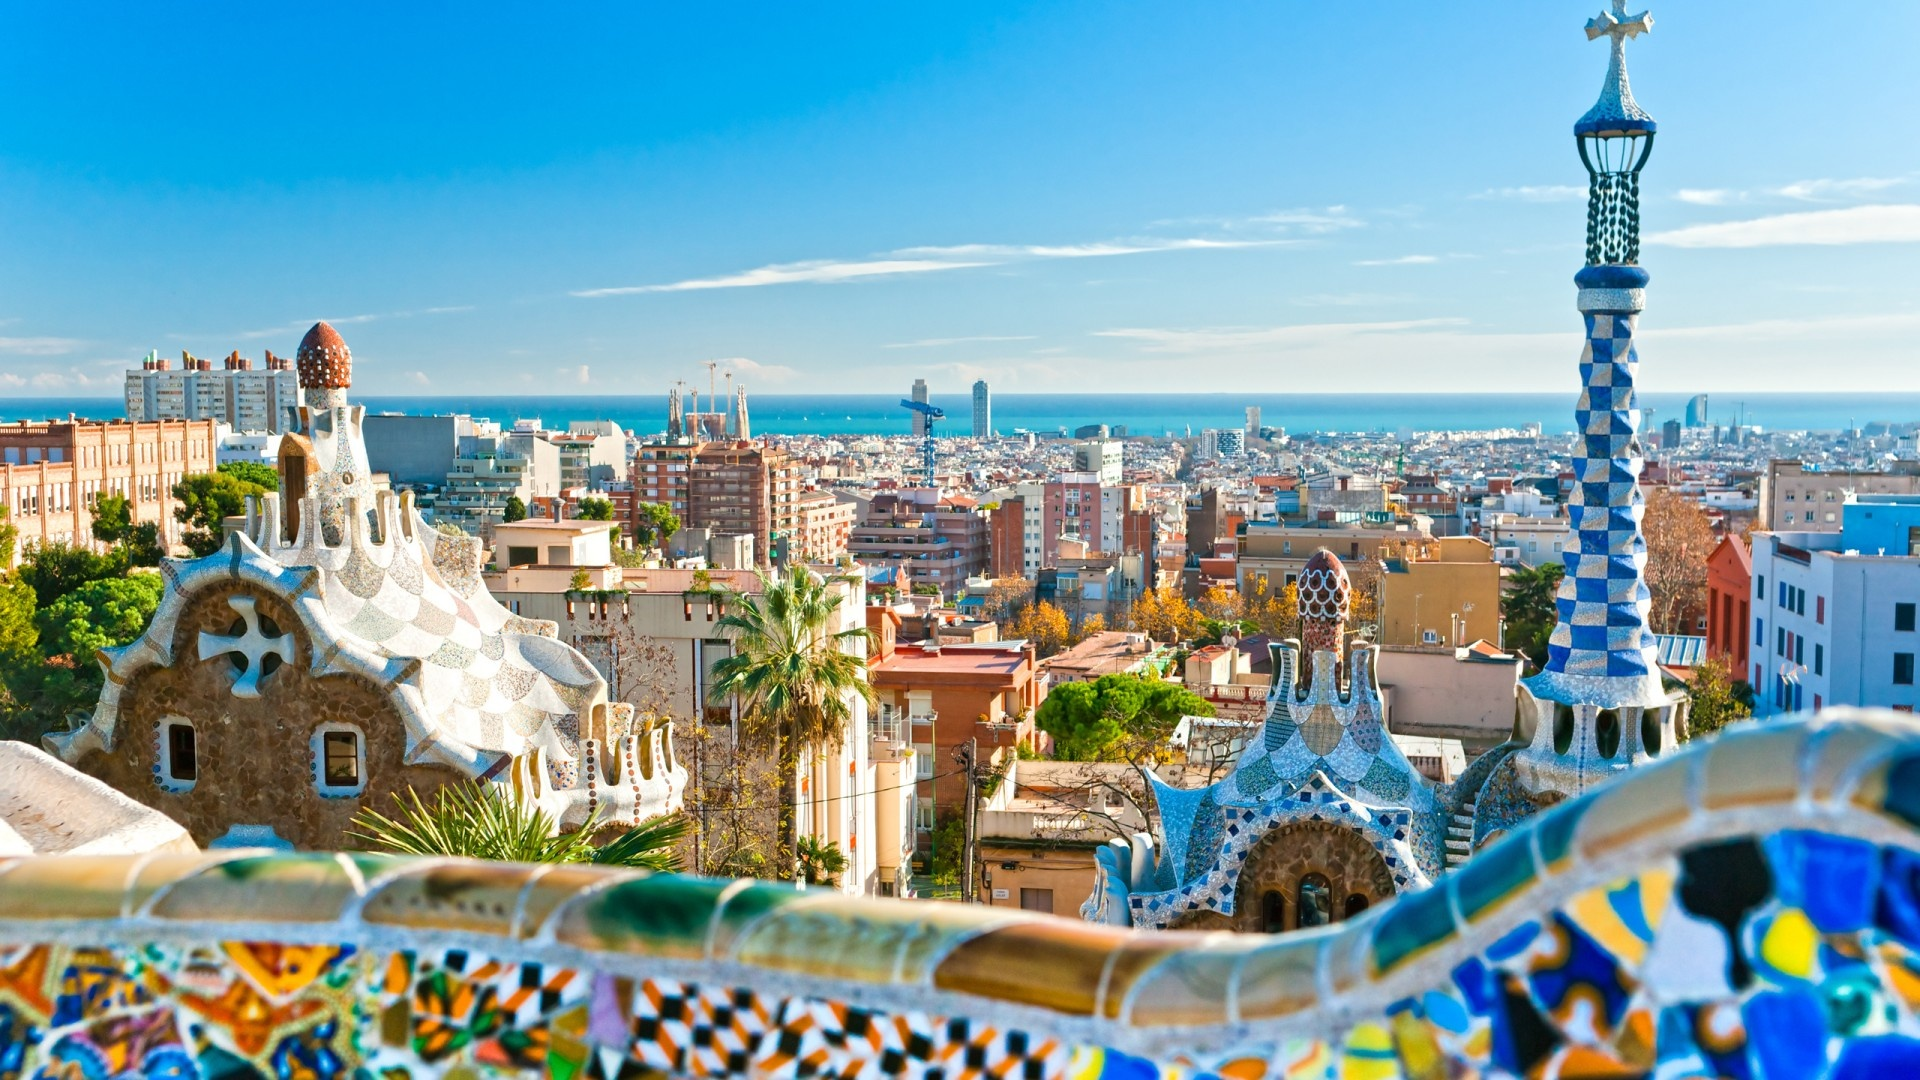 Parc Güell,things to do in Barcelona